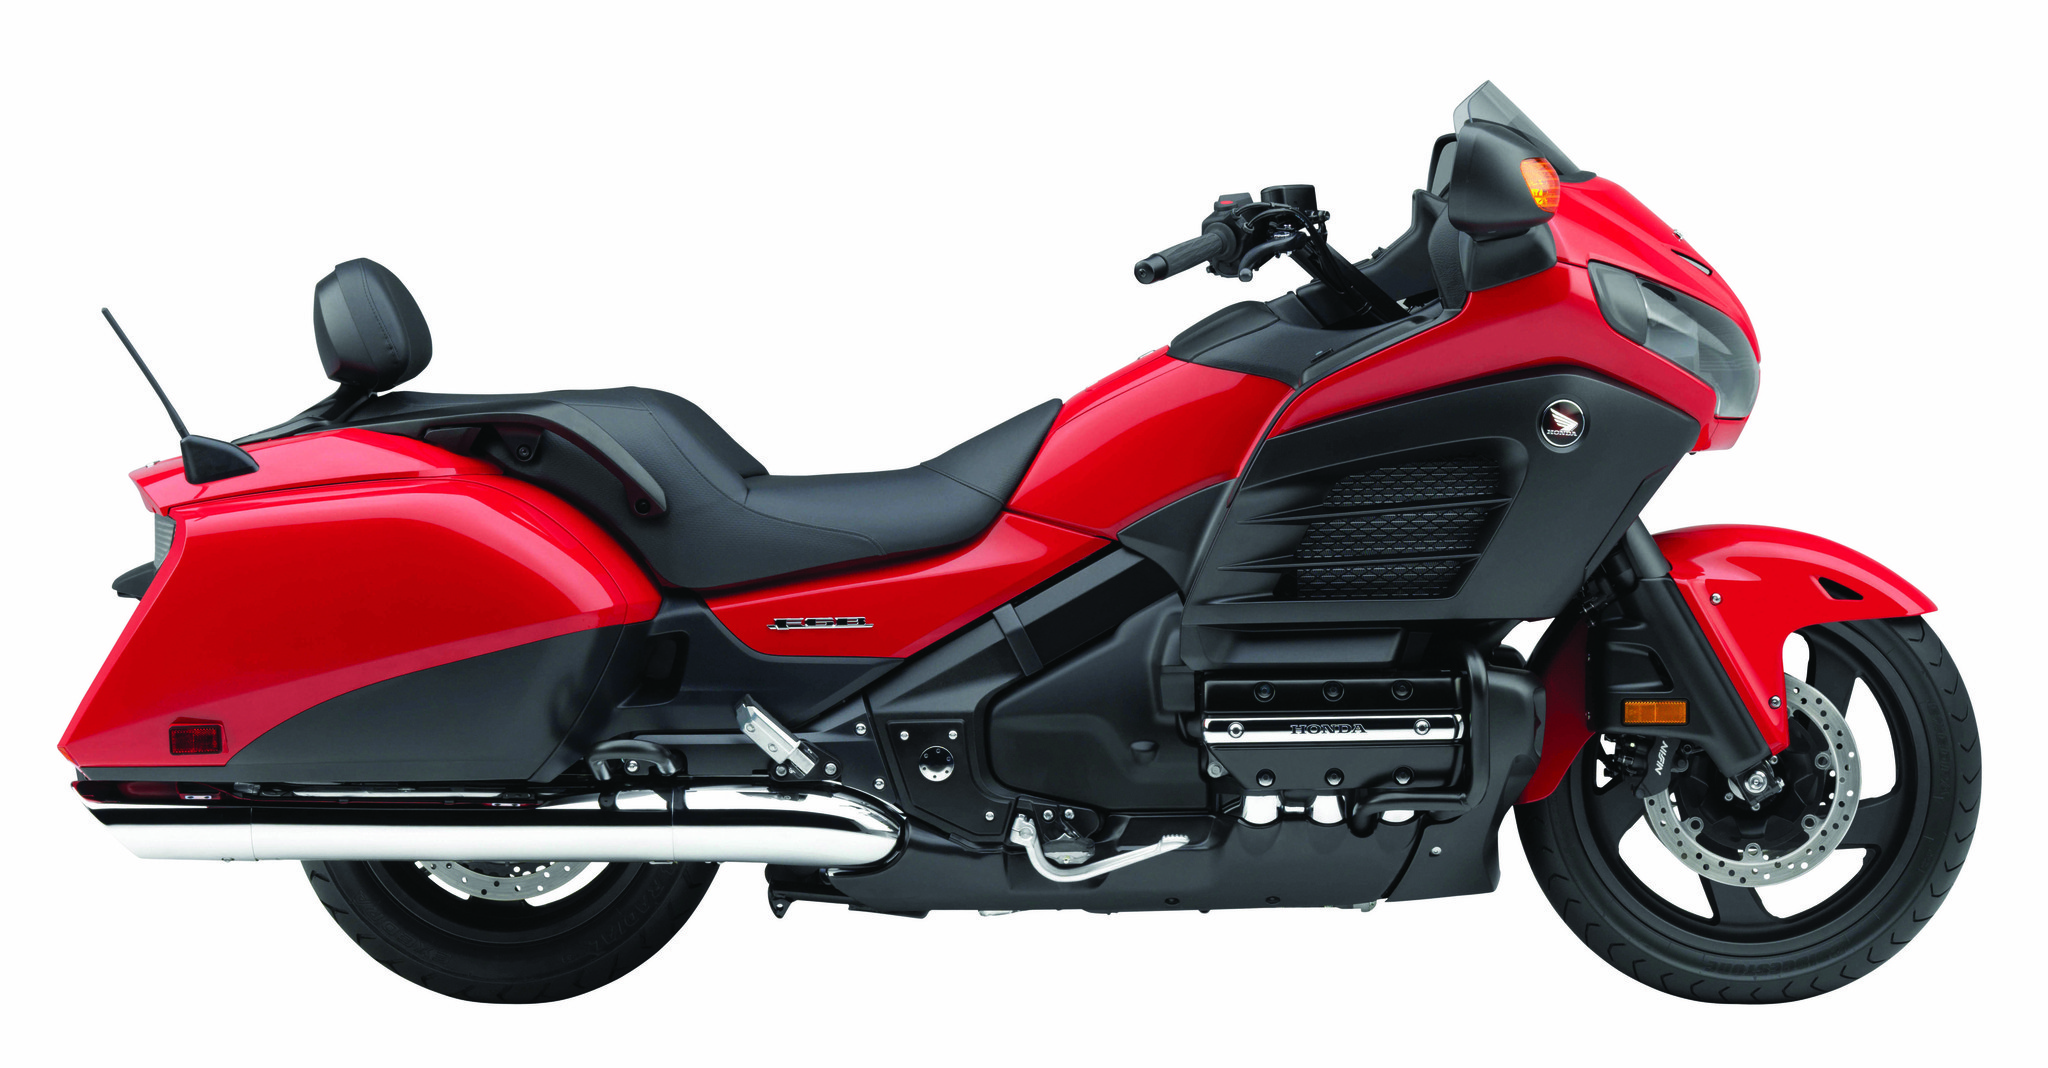 Gallery: 2013 Honda motorcycle lineup includes CB500s, Gold Wing F6B - Honda Gold Wing F6B in red